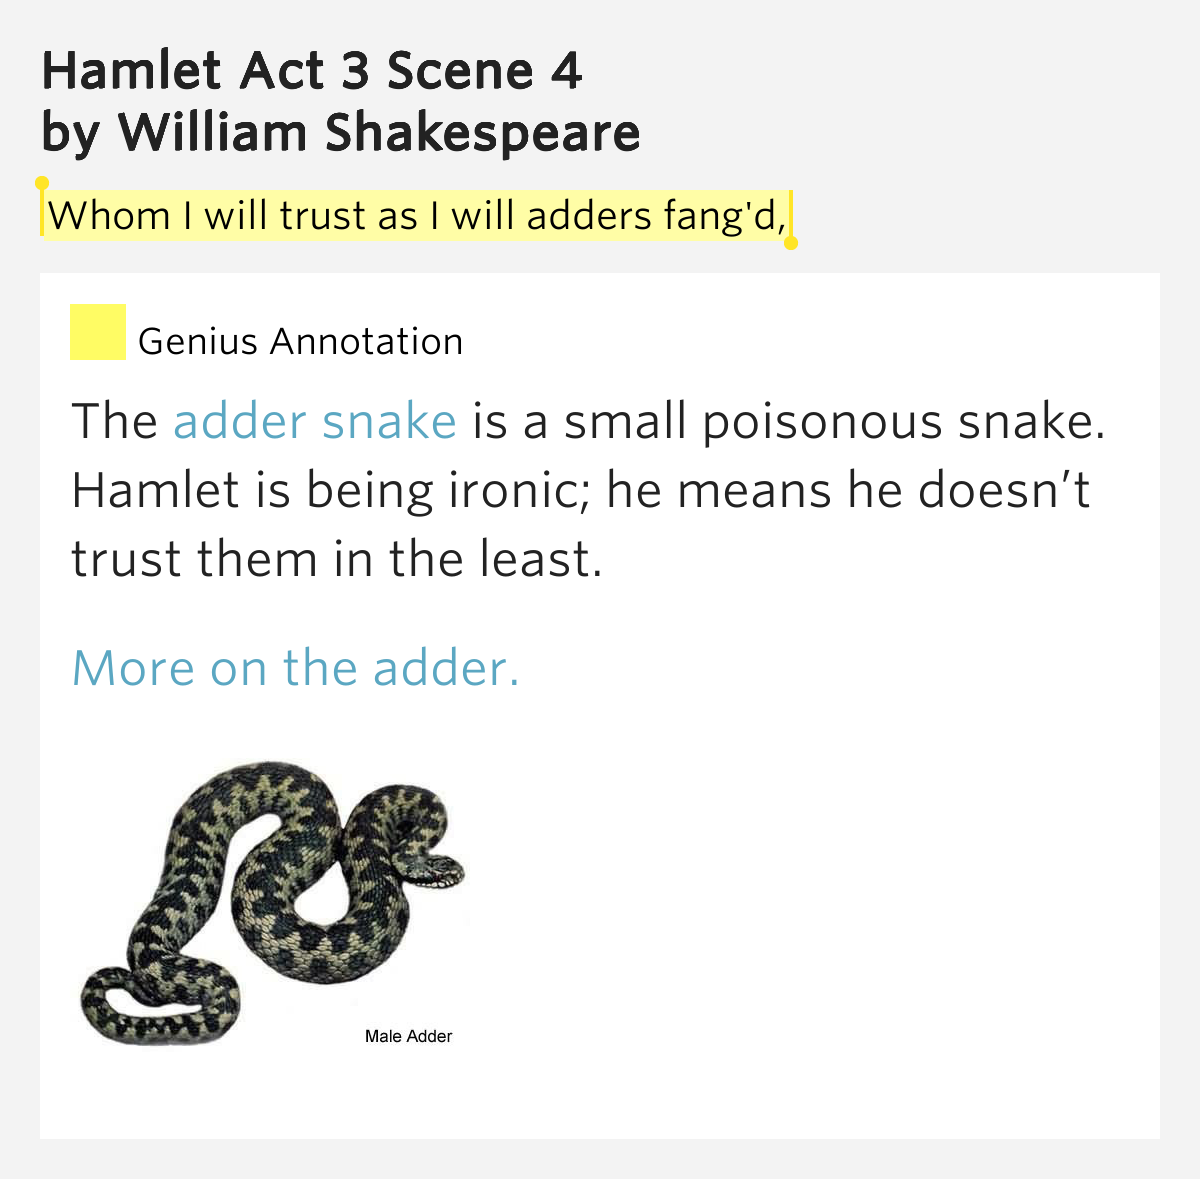 act 4 hamlet Act 4 act iv scene i act iv scene vi: hamlet's letter leaves many question unanswered if you were horatio, what questions would would you want t ask of hamlet.